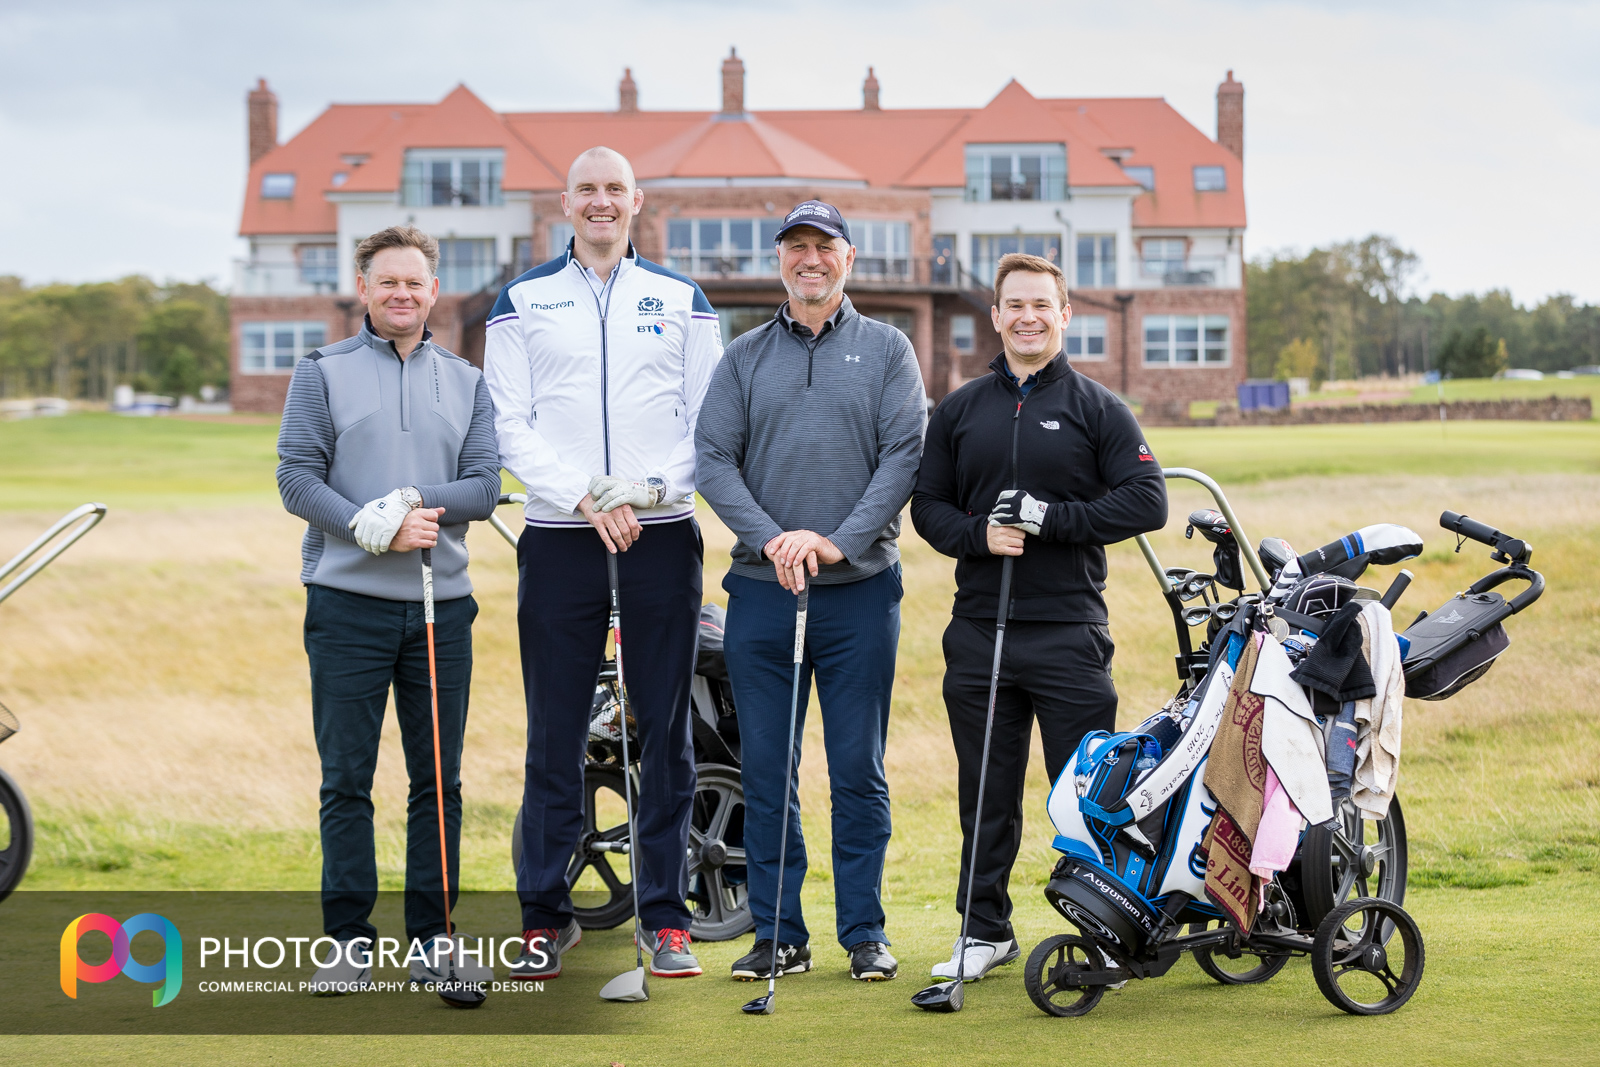 charity-golf-pr-event-photography-glasgow-edinburgh-scotland-23.jpg